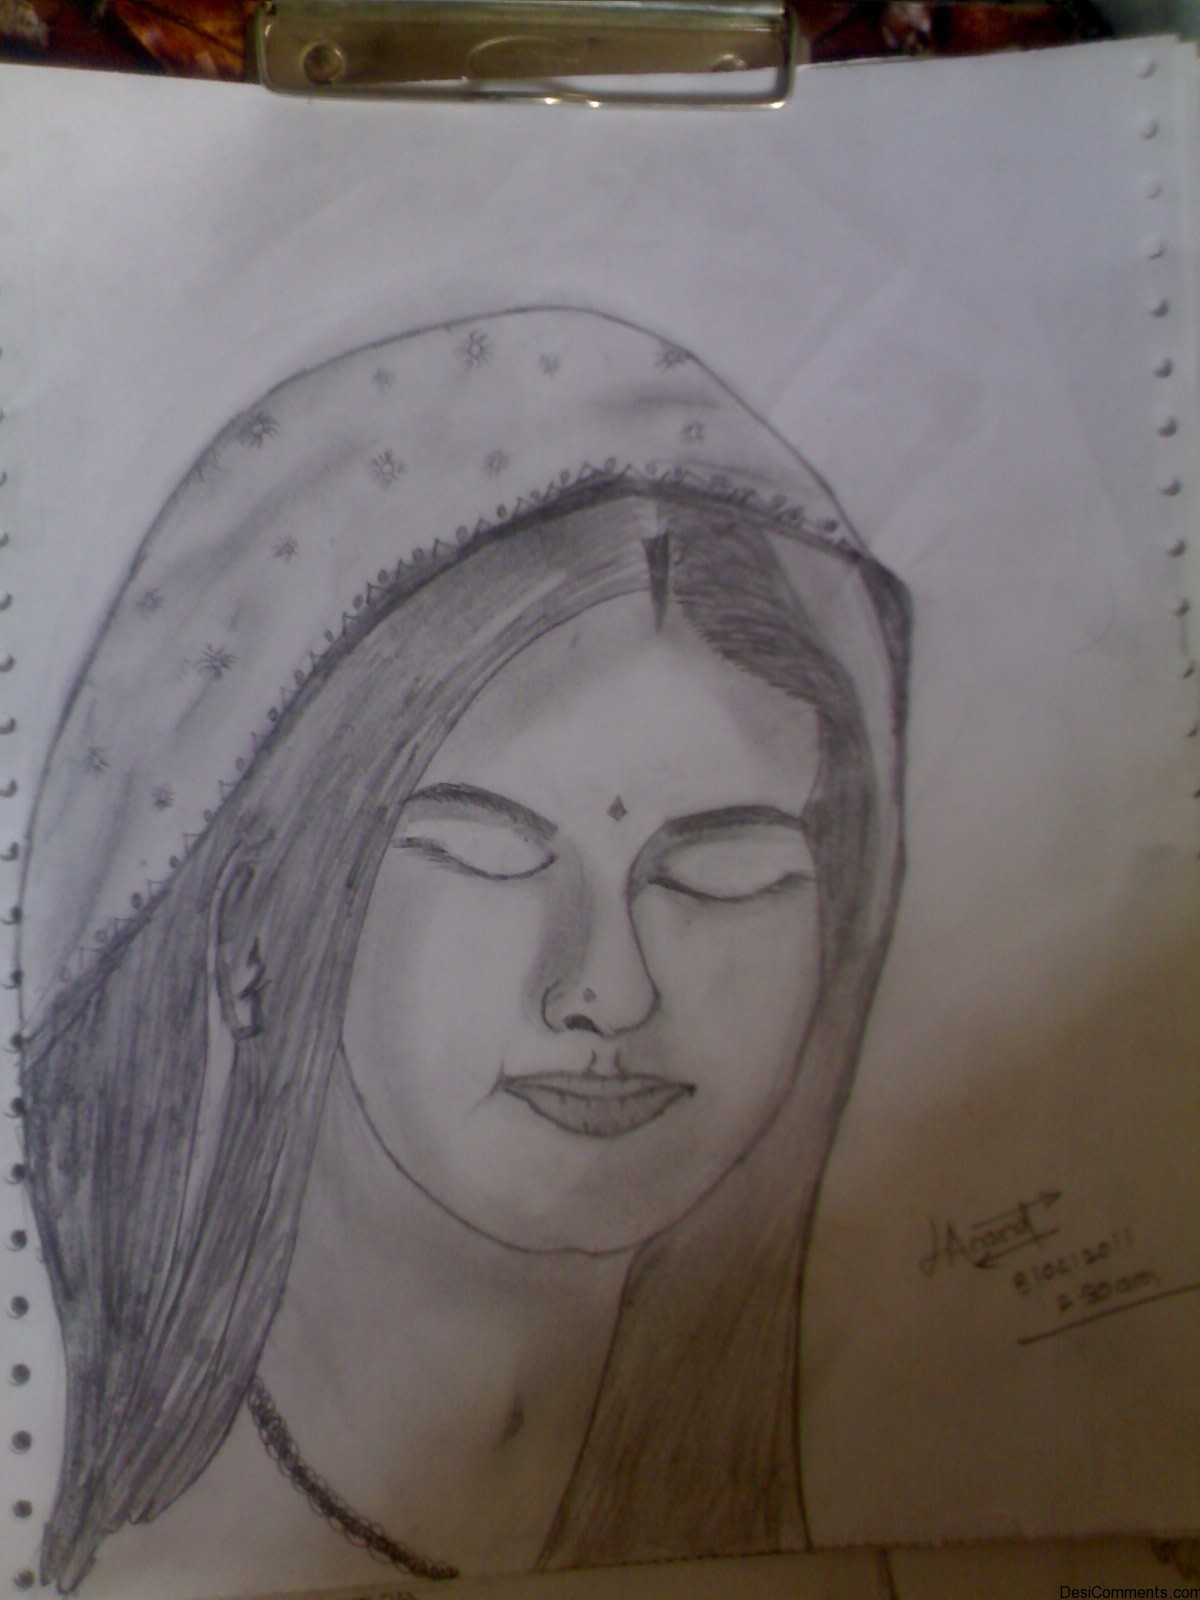 Sketch Of A Praying Girl - DesiComments.com